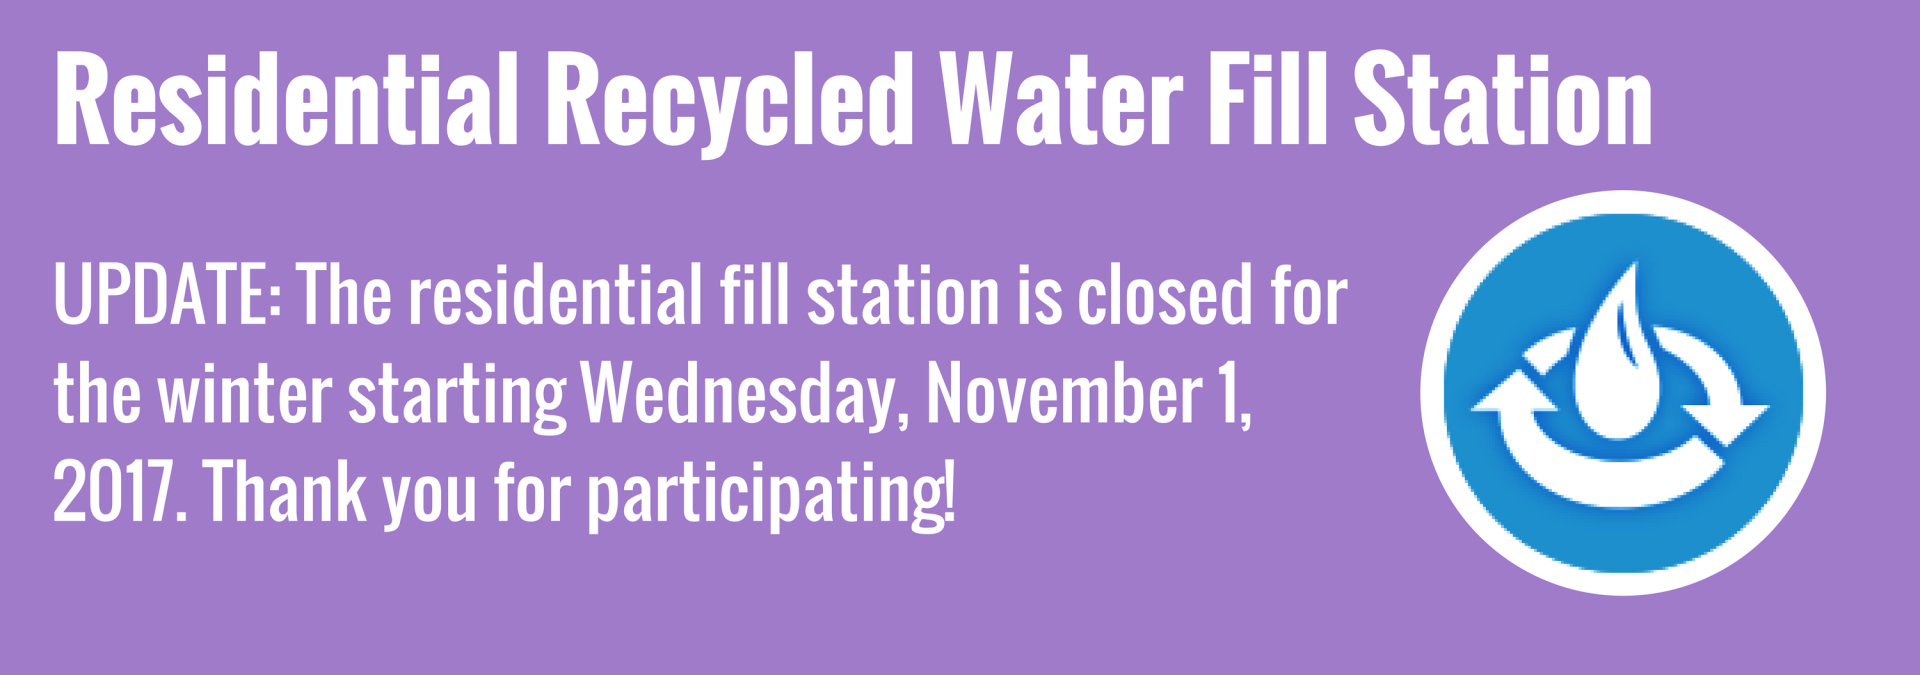 Residential Recycled Water Fill Station